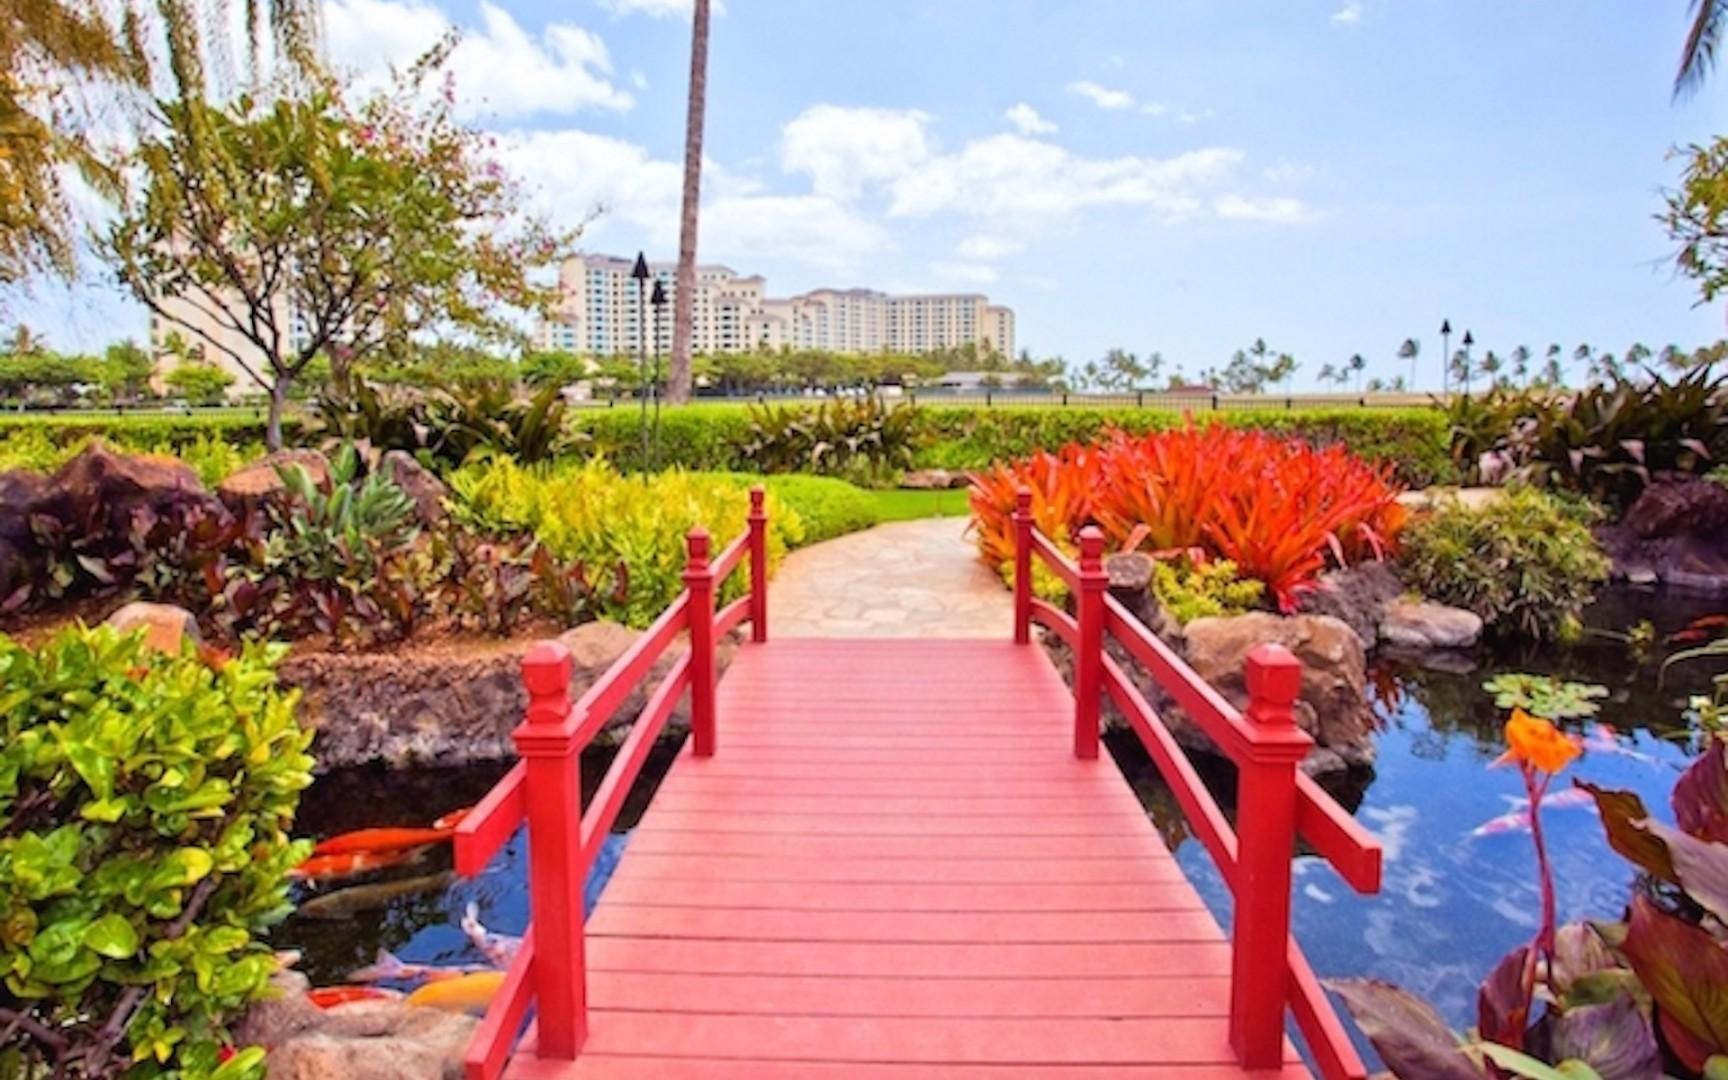 Stroll through the acres of lush, tropical grounds admiring the beautifully stocked koi ponds and streams.